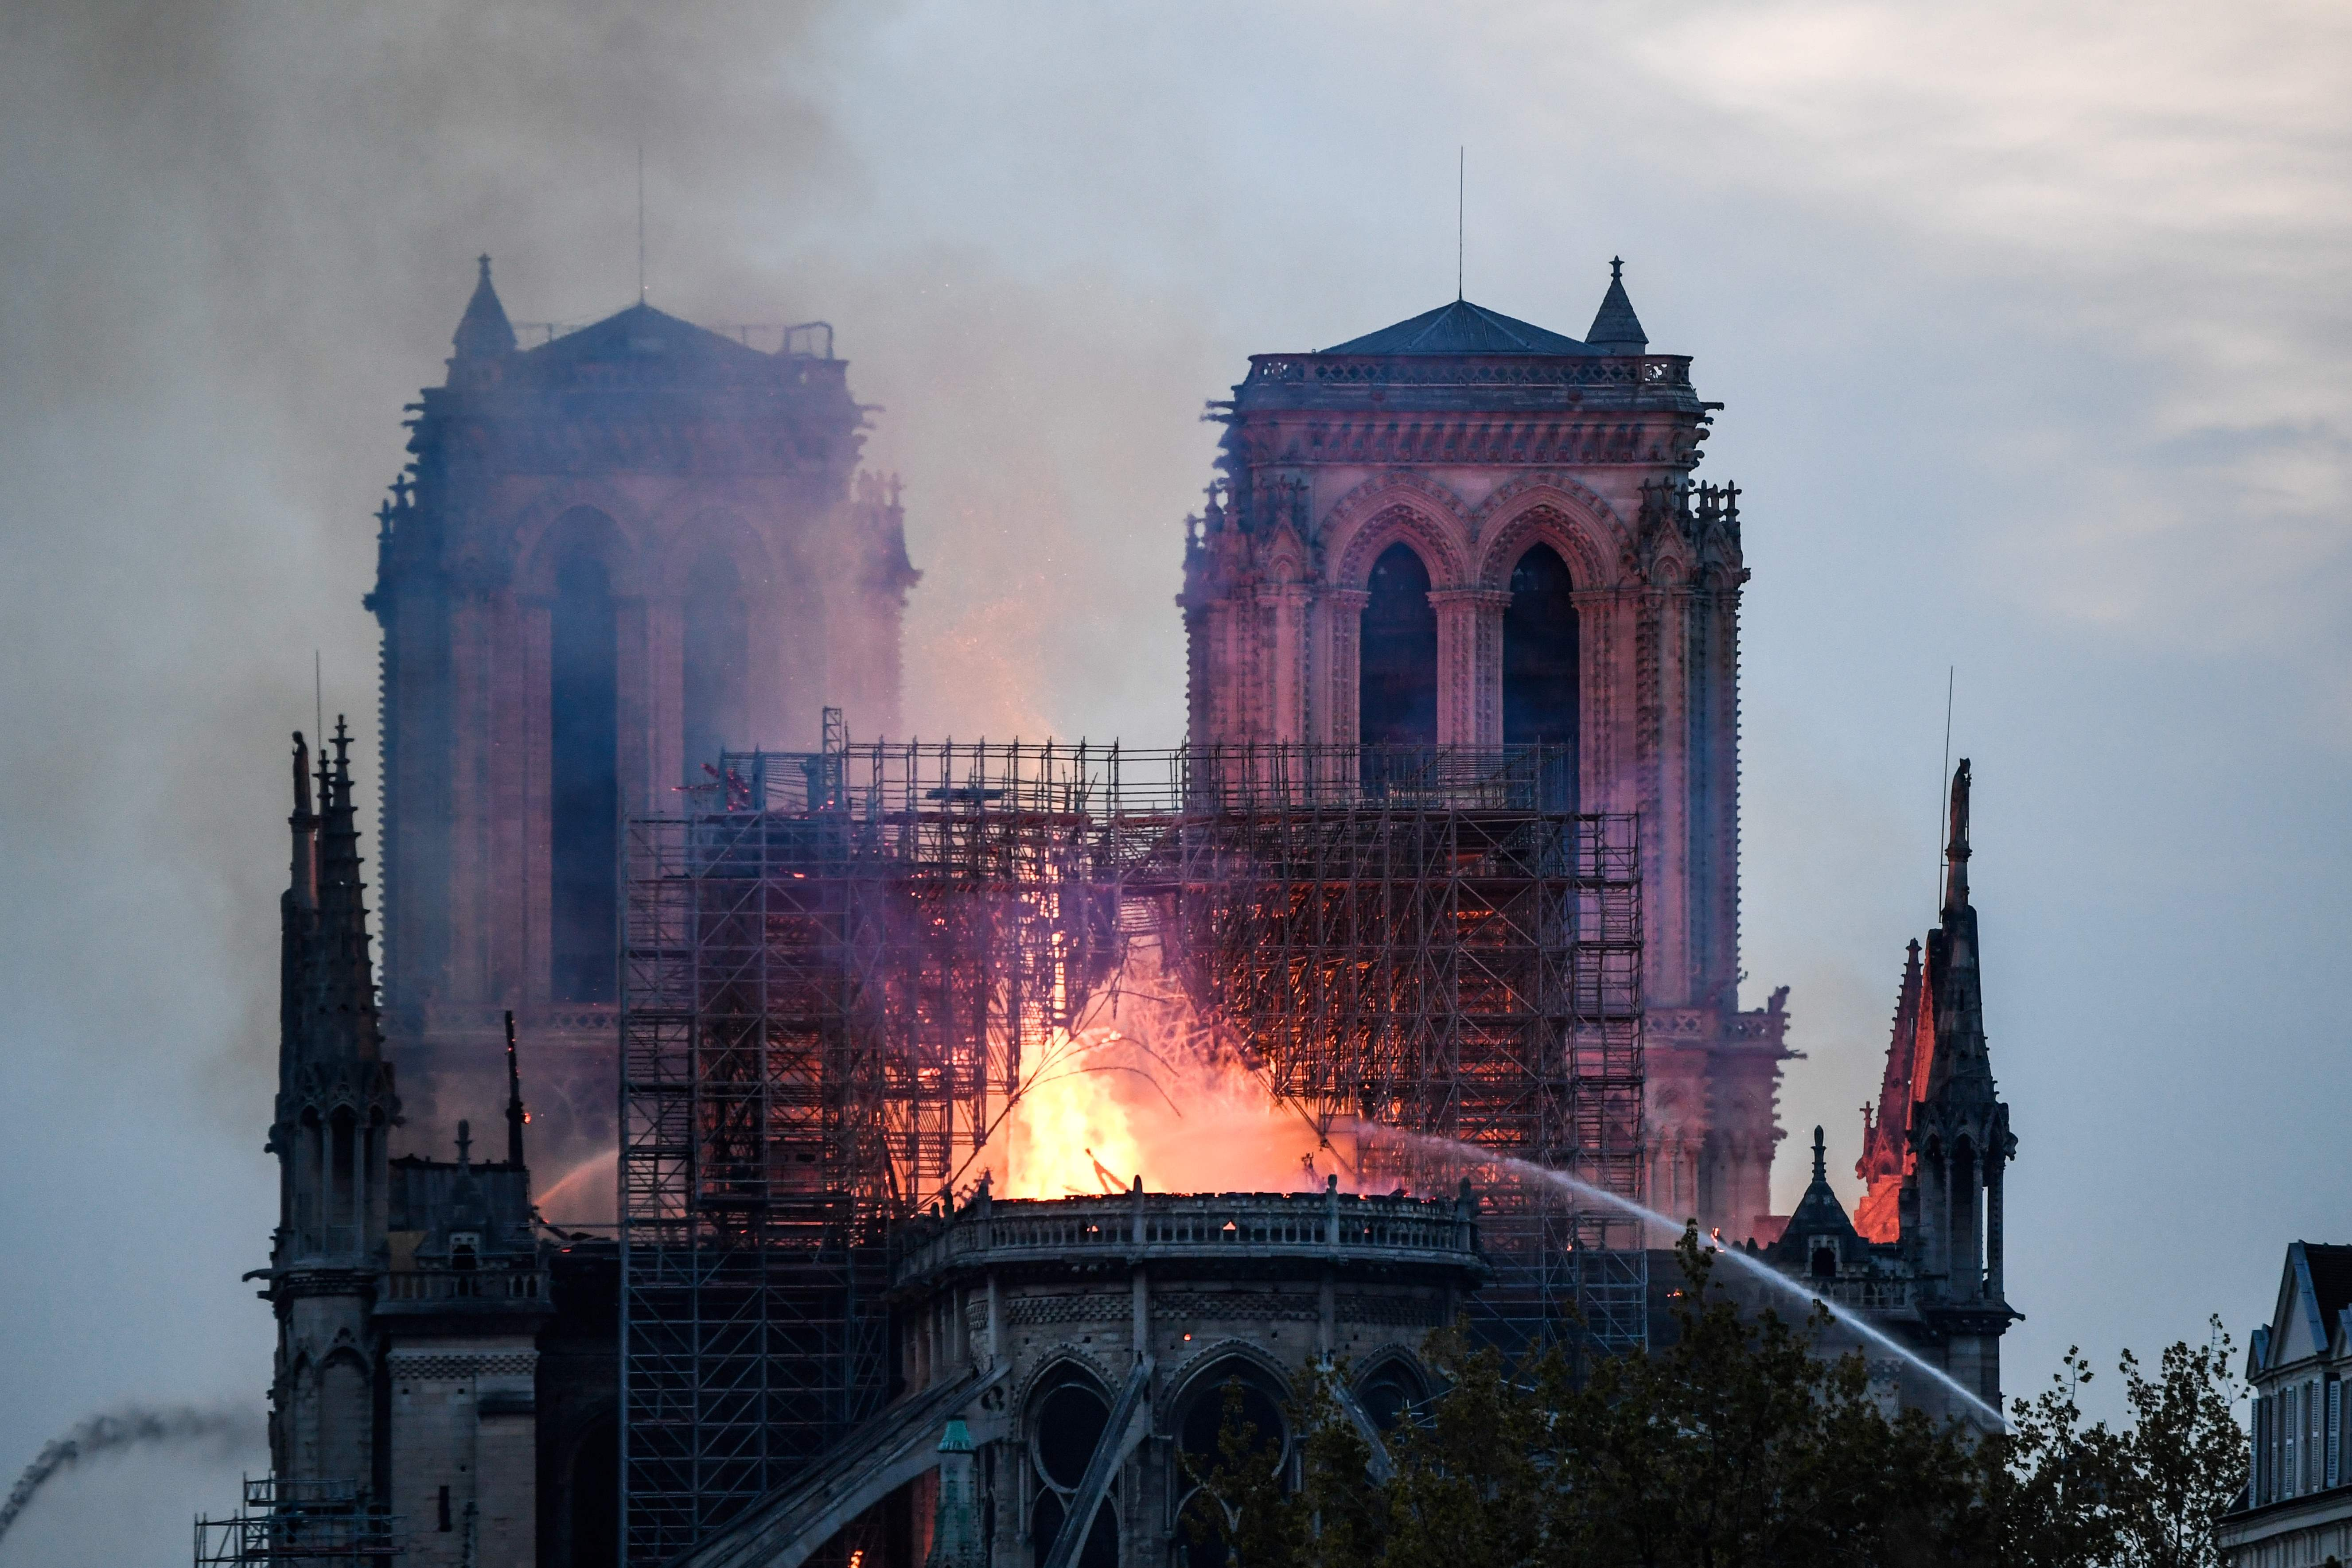 Firefighters douse flames and smoke billowing from the roof at Notre-Dame Cathedral in Paris on April 15, 2019. - A fire broke out at the landmark Notre-Dame Cathedral in central Paris, potentially involving renovation works being carried out at the site, the fire service said. (Photo by Bertrand GUAY / AFP)